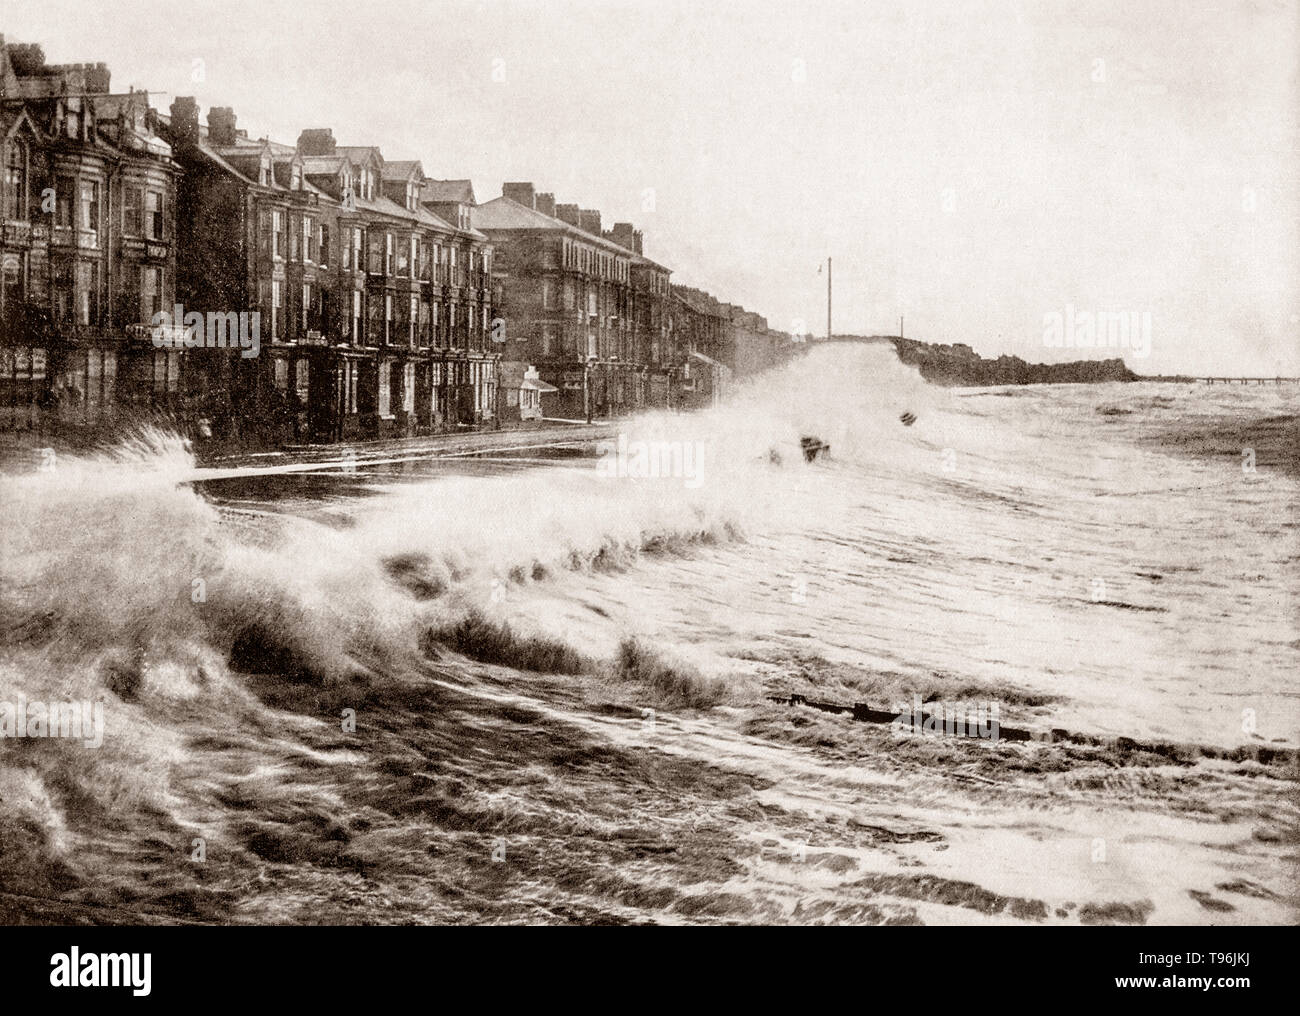 A late 19th Century view of  stormy seas battering the seafront in Blackpool, a seaside resort on the Lancashire Irish Sea coast, between the Ribble and Wyre estuaries, in North West England.  It became fashionable in the middle of the 18th century due to the practice of sea bathing to cure diseases, with the completion of a branch railway line to Blackpool. Tourist growth was intensified by the practice among the Lancashire cotton mill owners of closing the factories for a week every year to service and repair machinery. - Stock Image